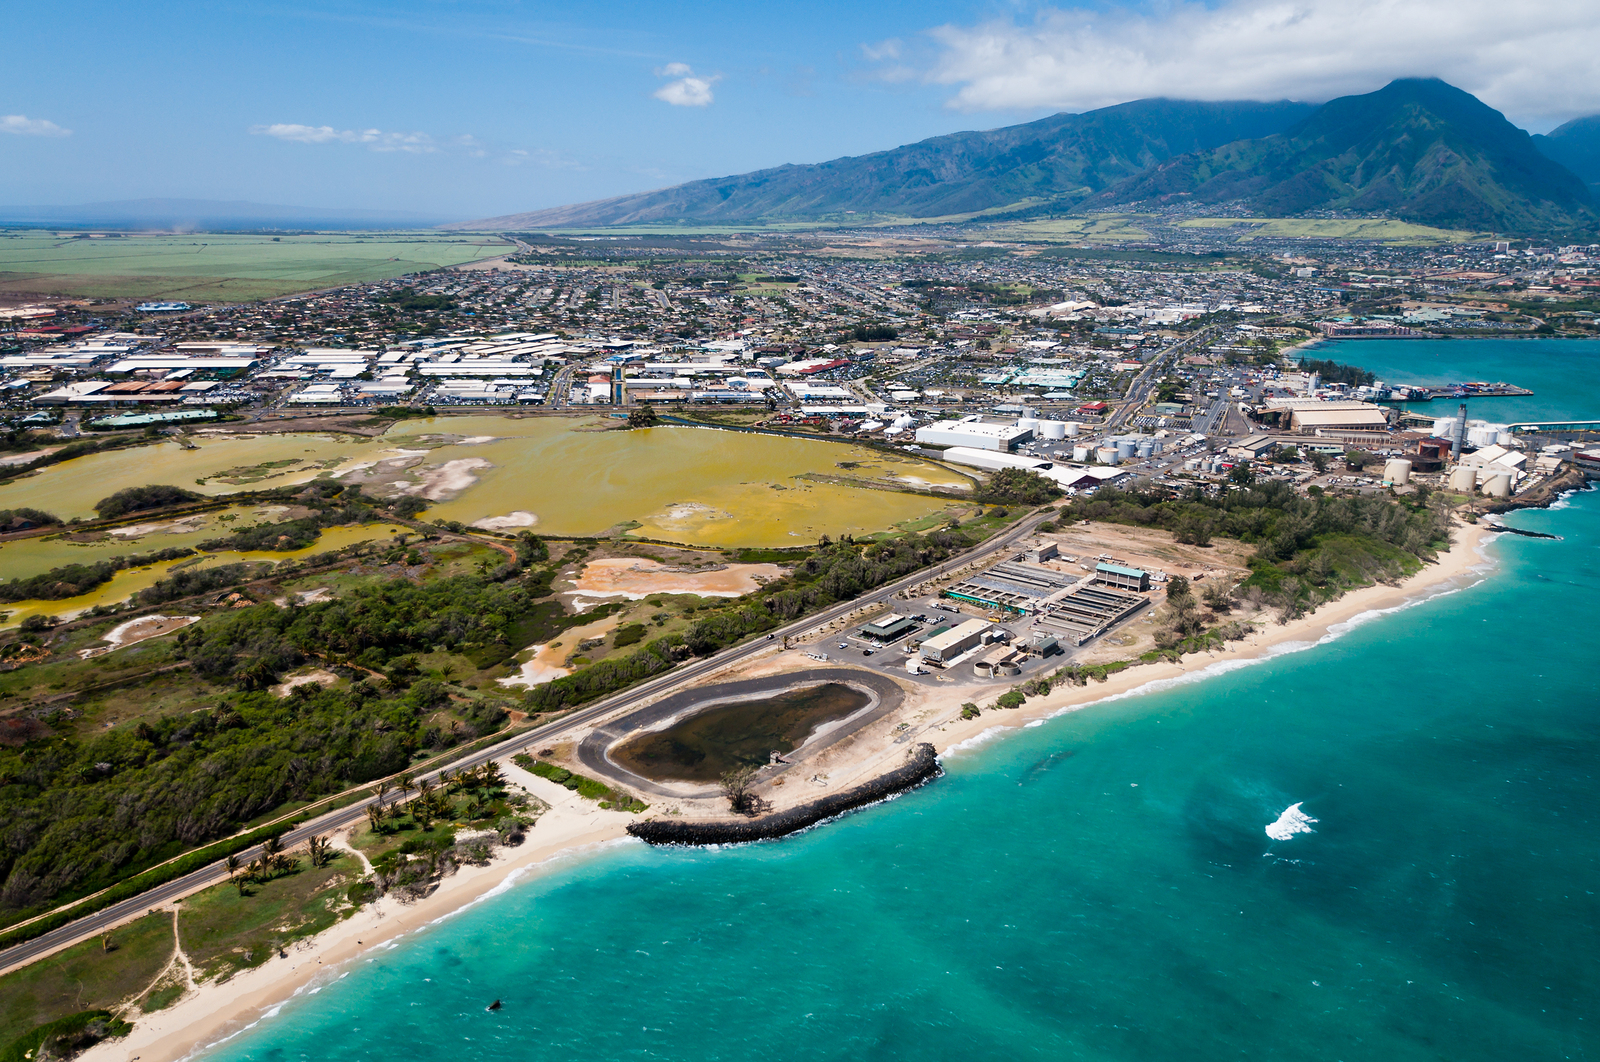 Aerial view of the city of Kahului, Maui Hawaii